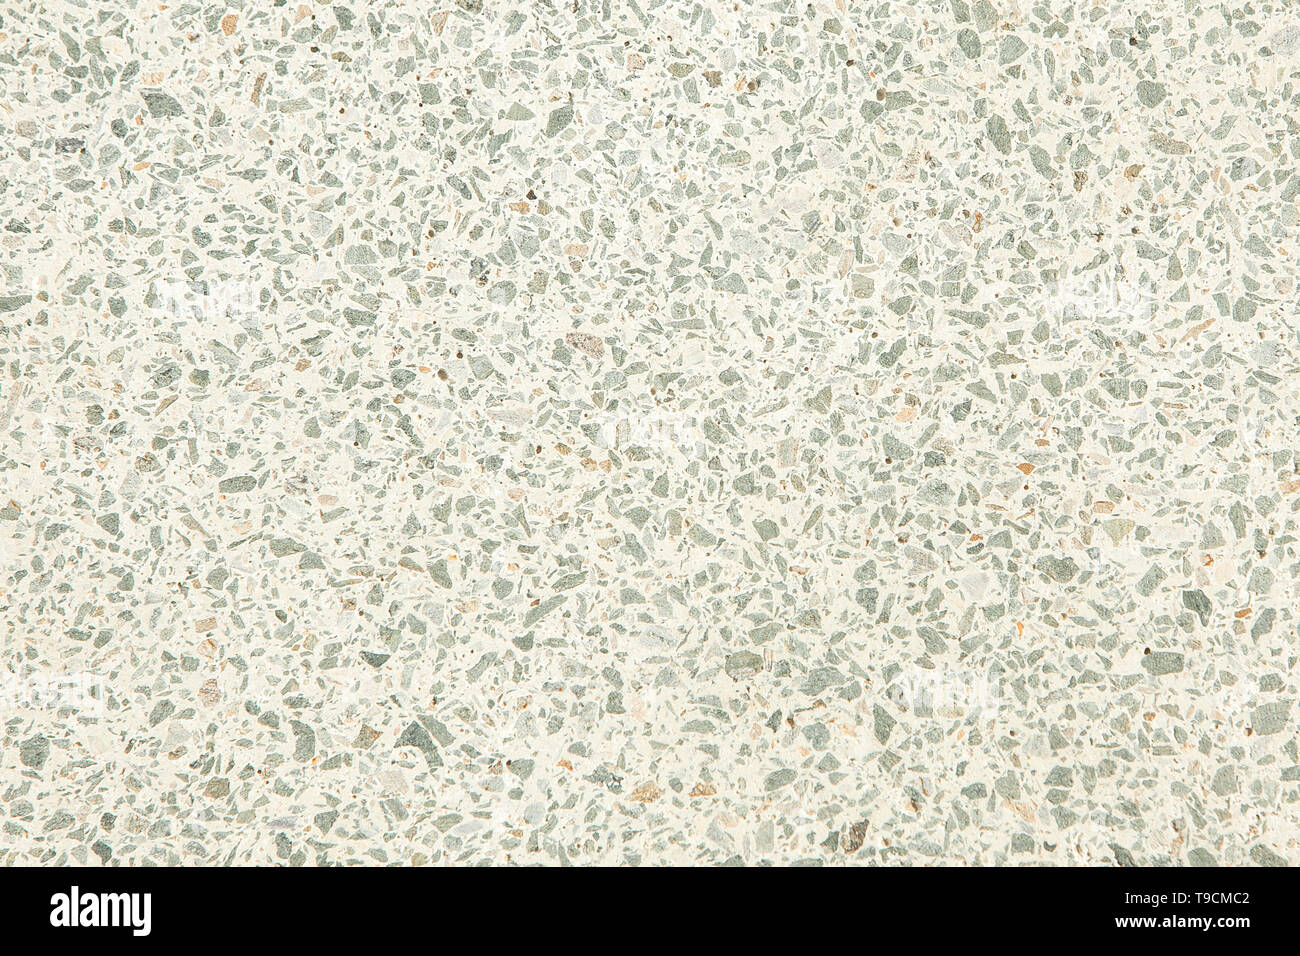 terrazzo floor old texture or polished stone for background. - Stock Image